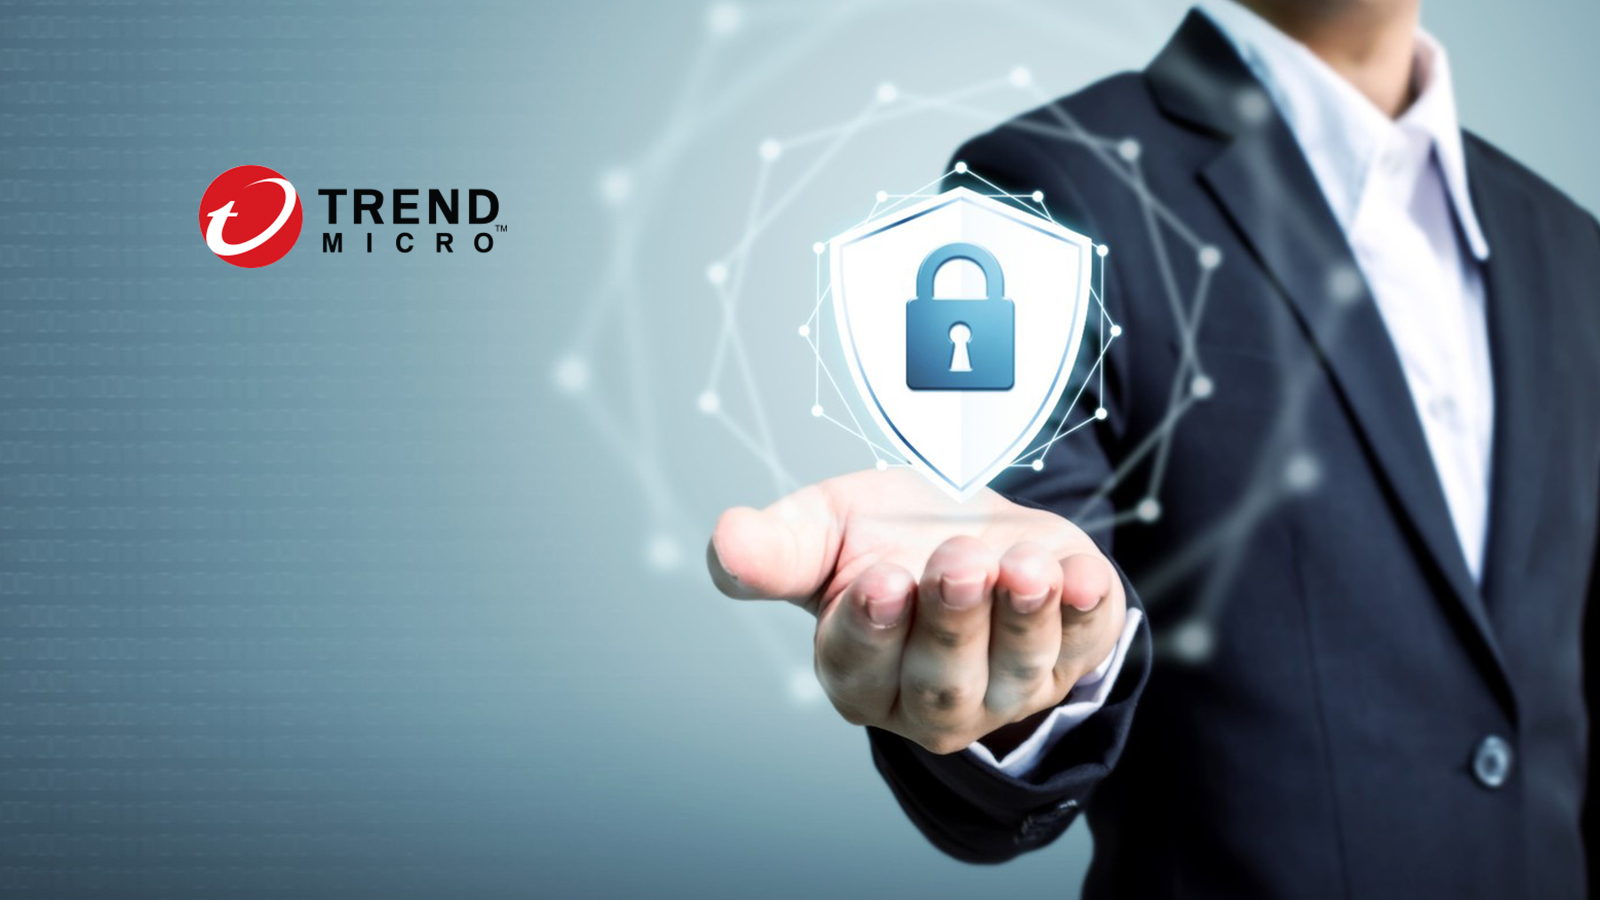 Trend Micro presenta IoT Security 2.0